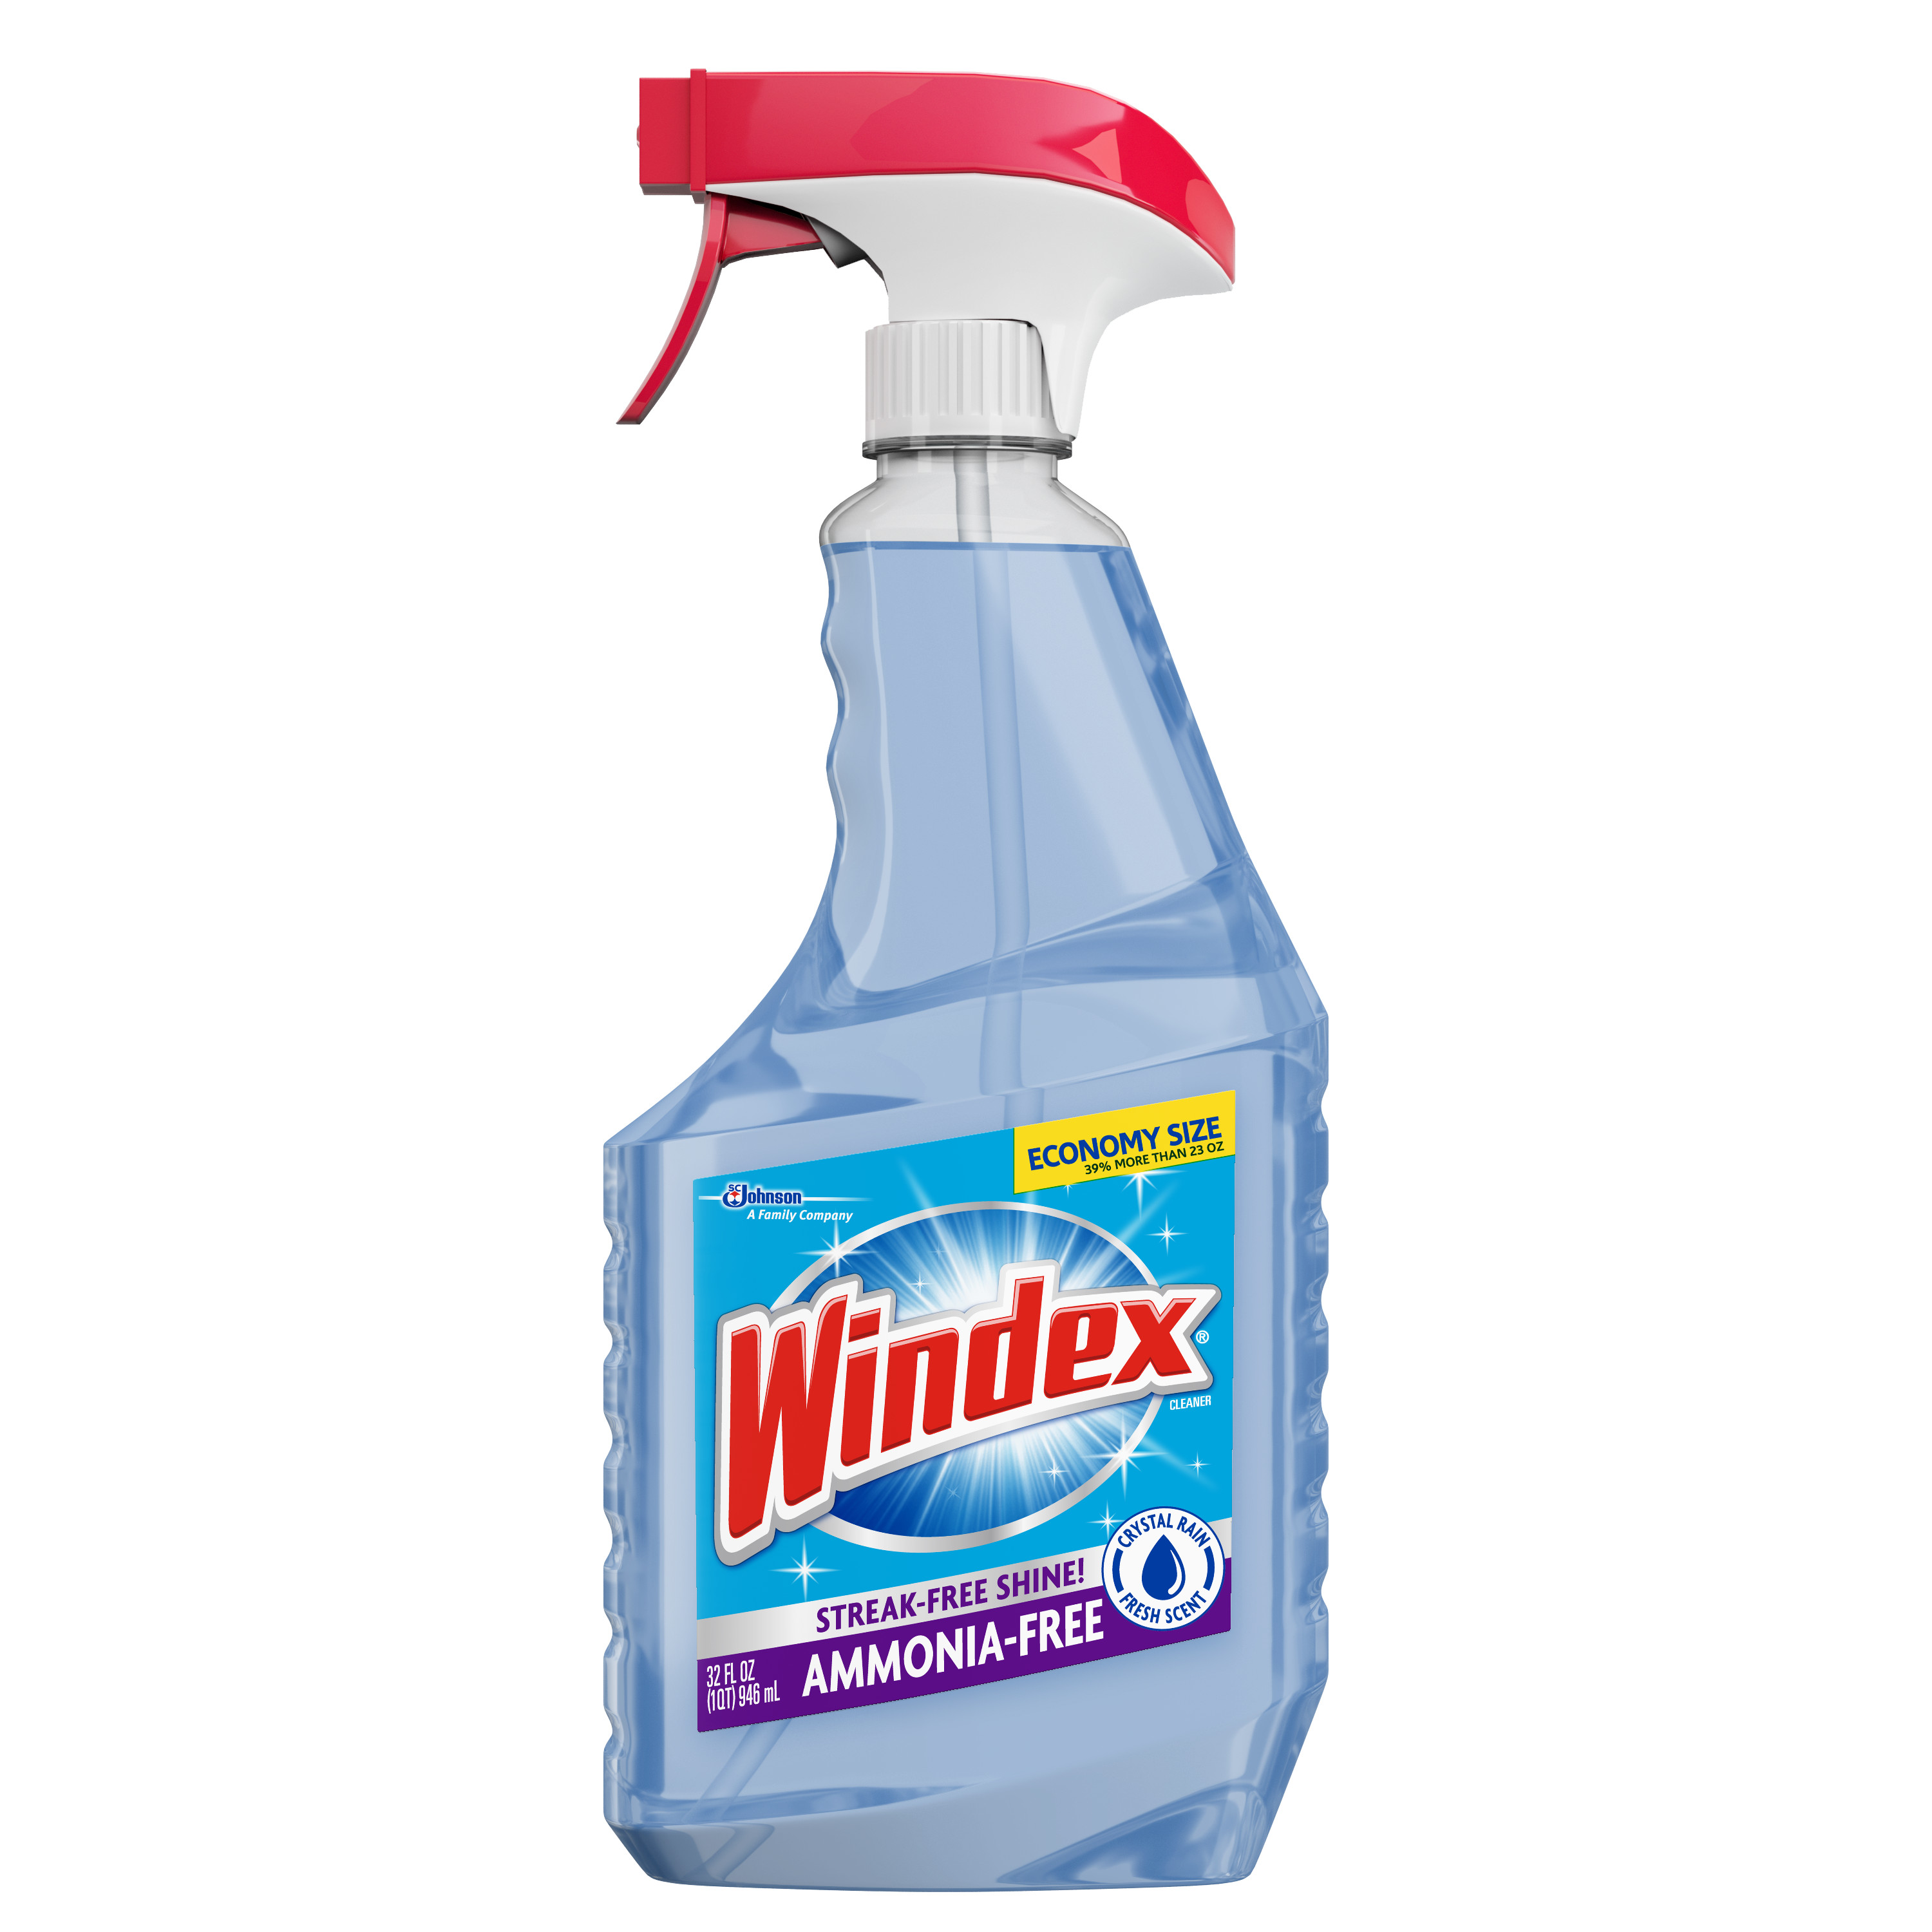 Windex Crystal Rain Glass Cleaner Trigger 32 Fluid Ounces